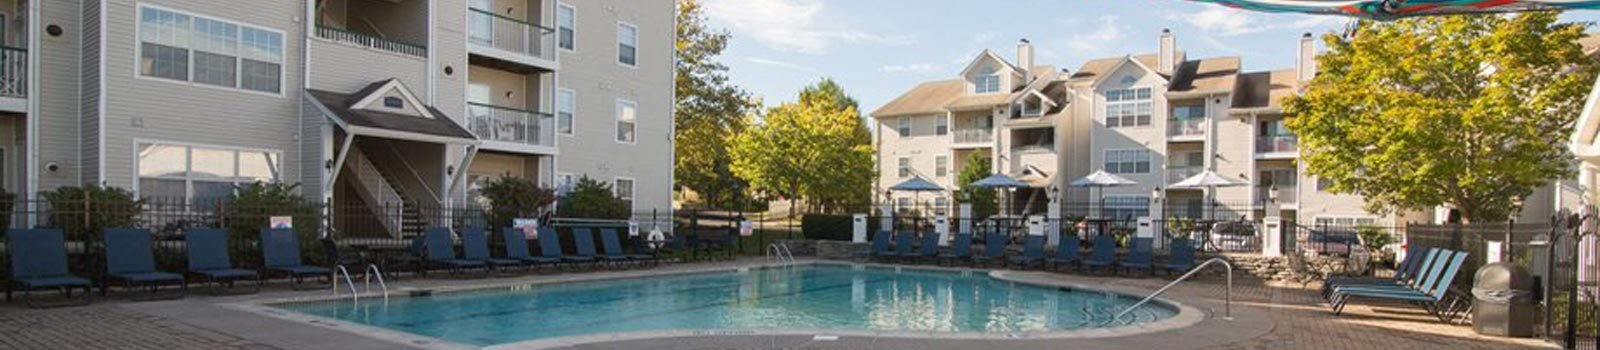 Town Walk at Hamden Hills | Apartments near Quinnipiac University | Quinnipiac University Map on